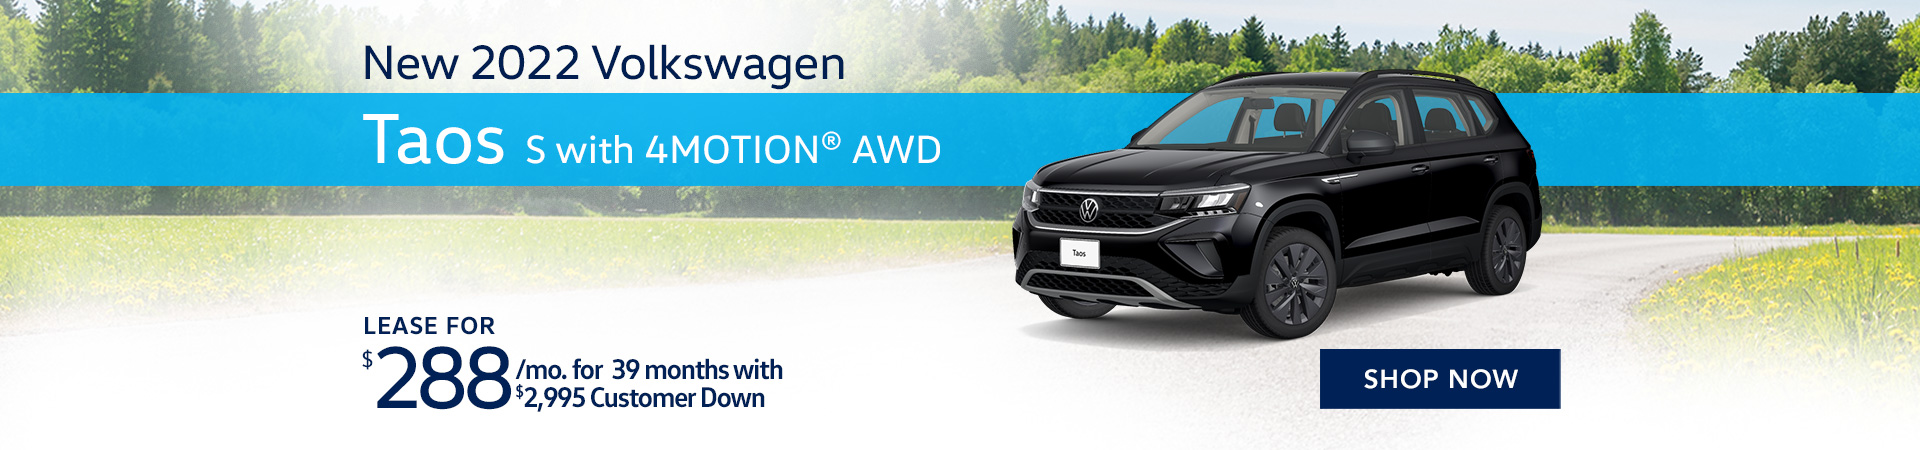 BVW_1920x450_New 2022 Volkswagen Taos S with 4MOTION® AWD_ _07'21